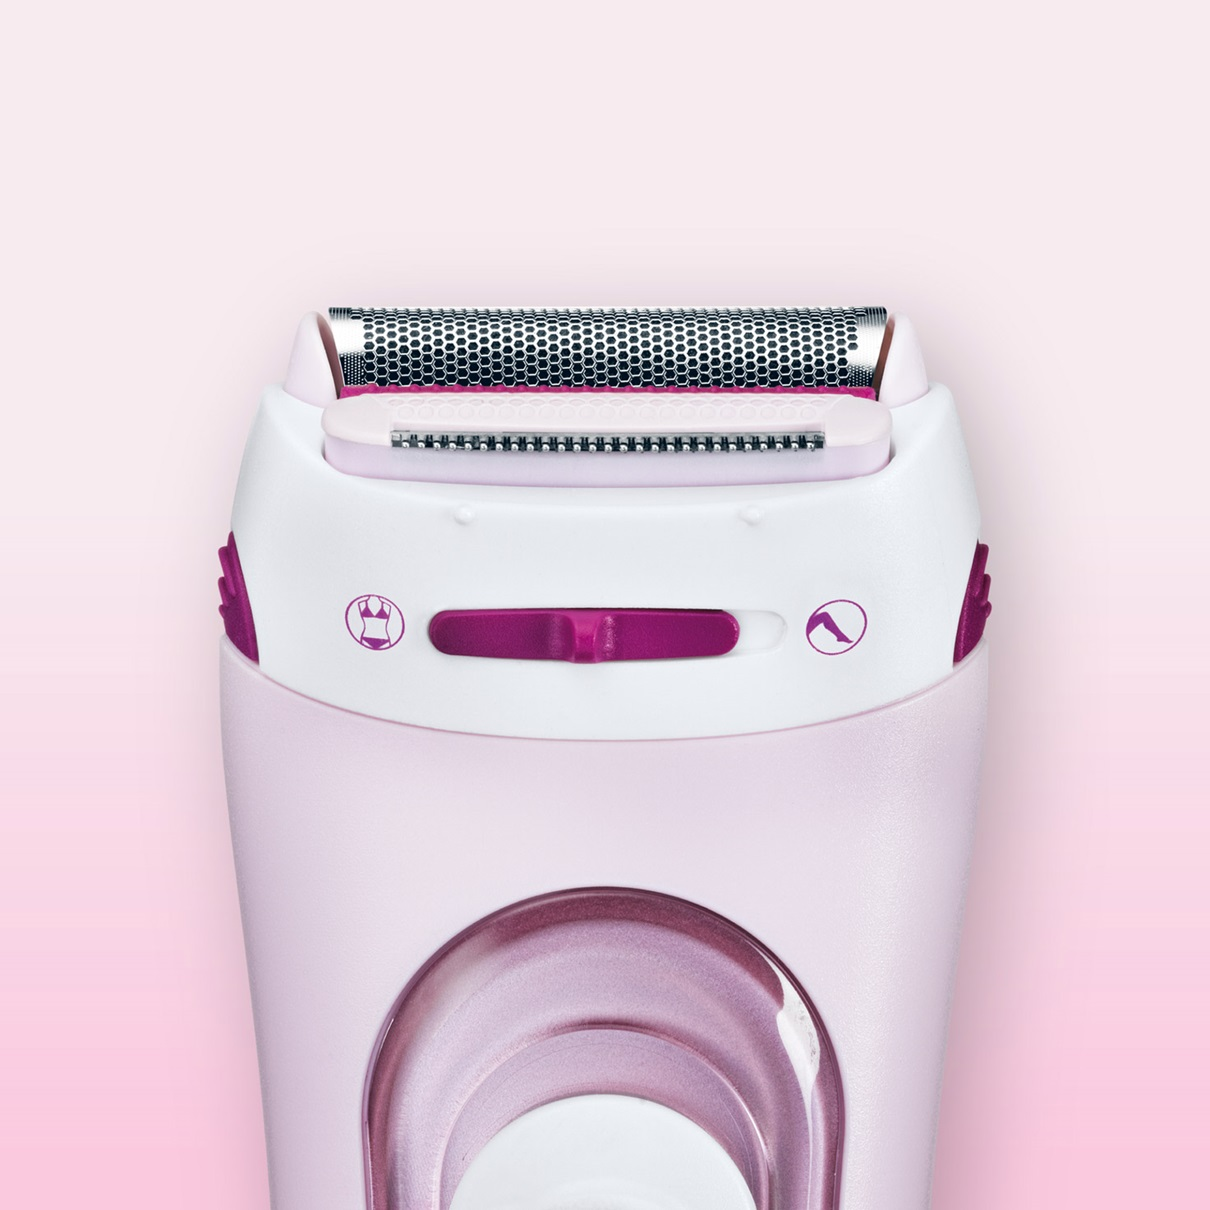 Braun Lady Shaver - 5360 Electric Shaver including Exfoliation Attachment - side